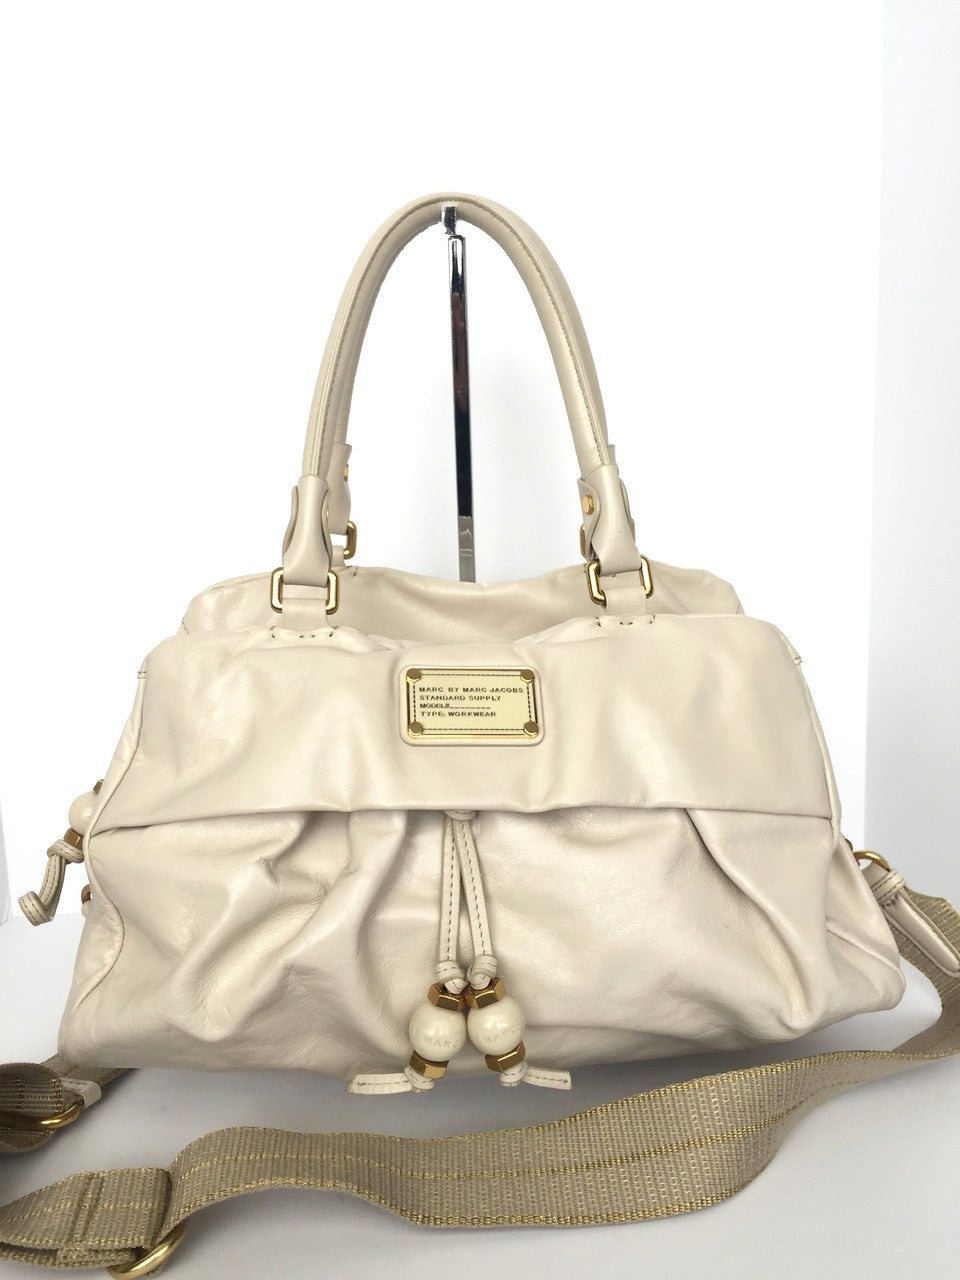 Marc by Marc Jacob Cream Leather Satchel